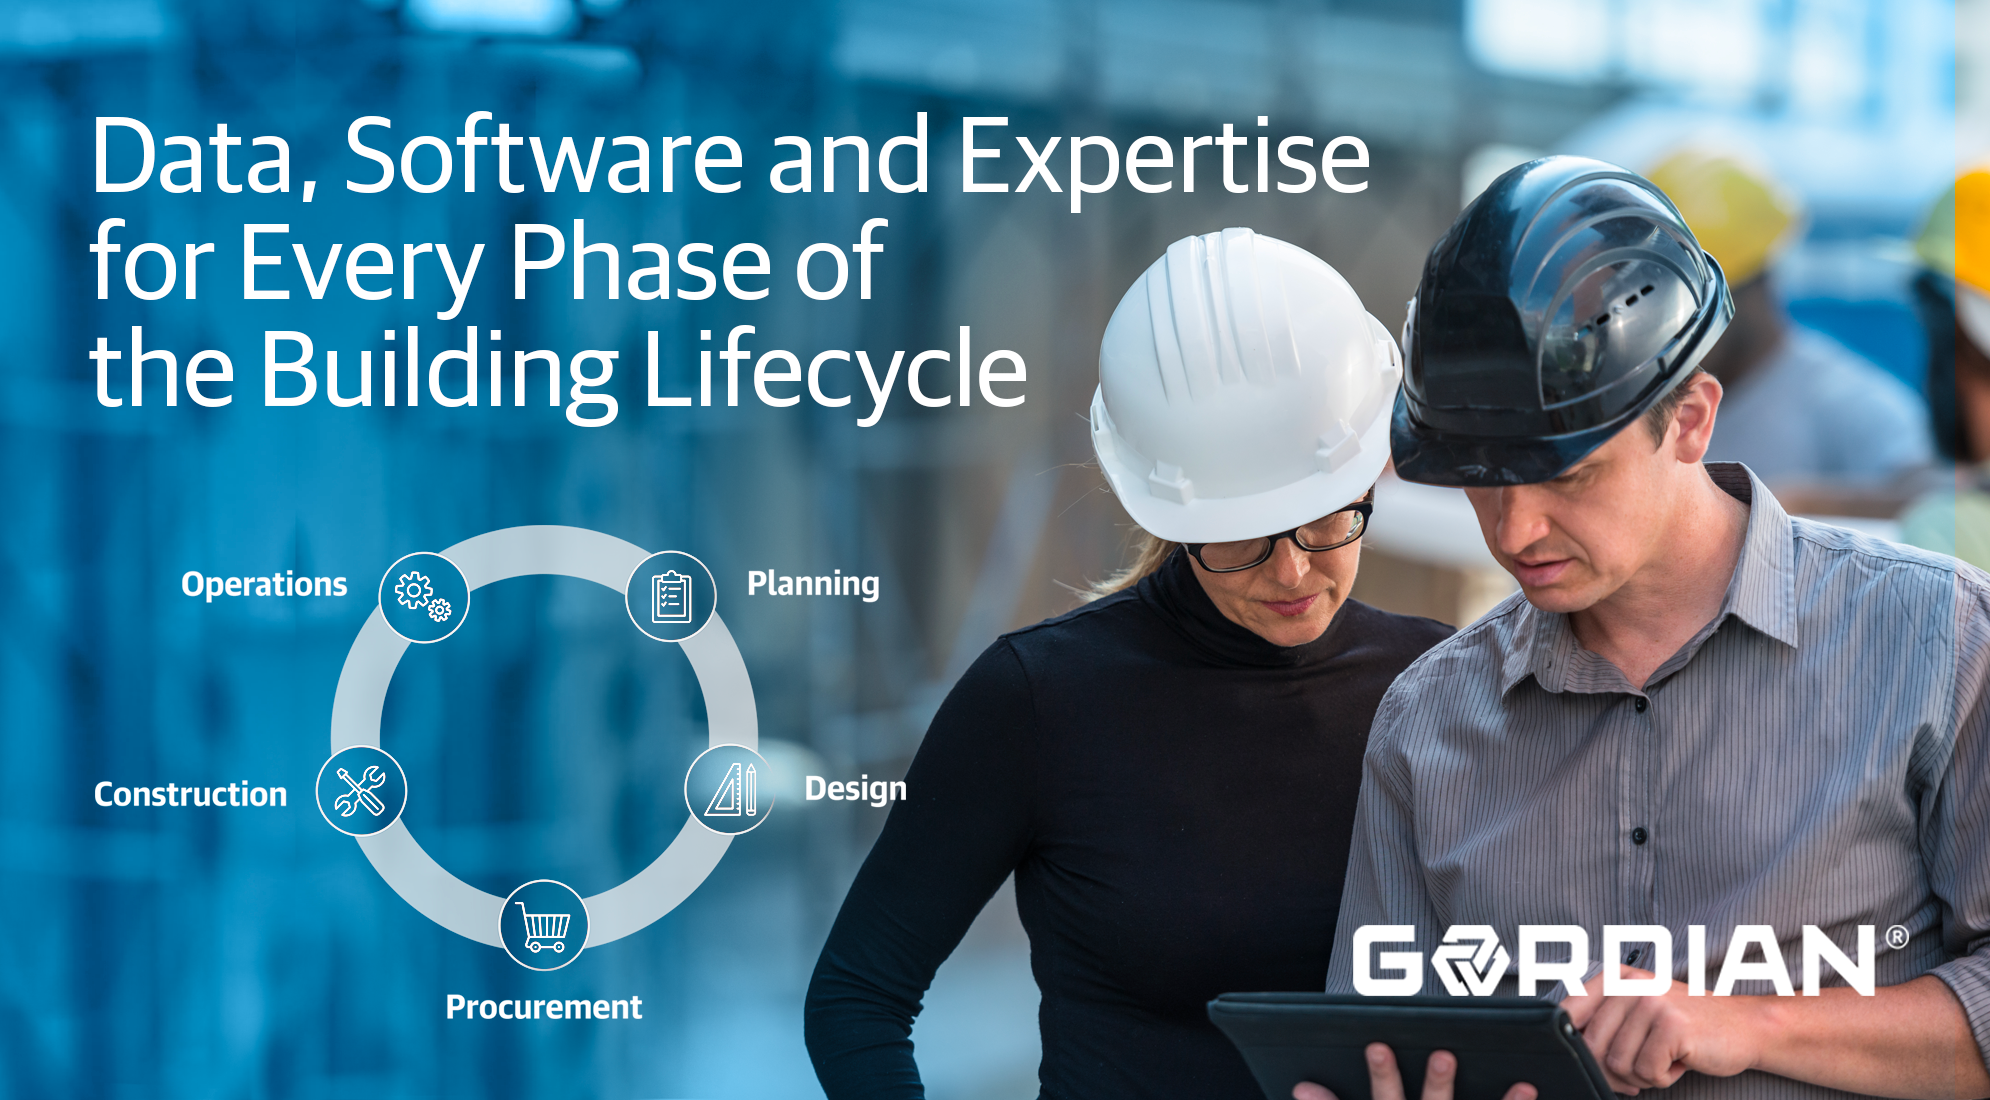 Solutions for Every Phase of the Building Lifecycle